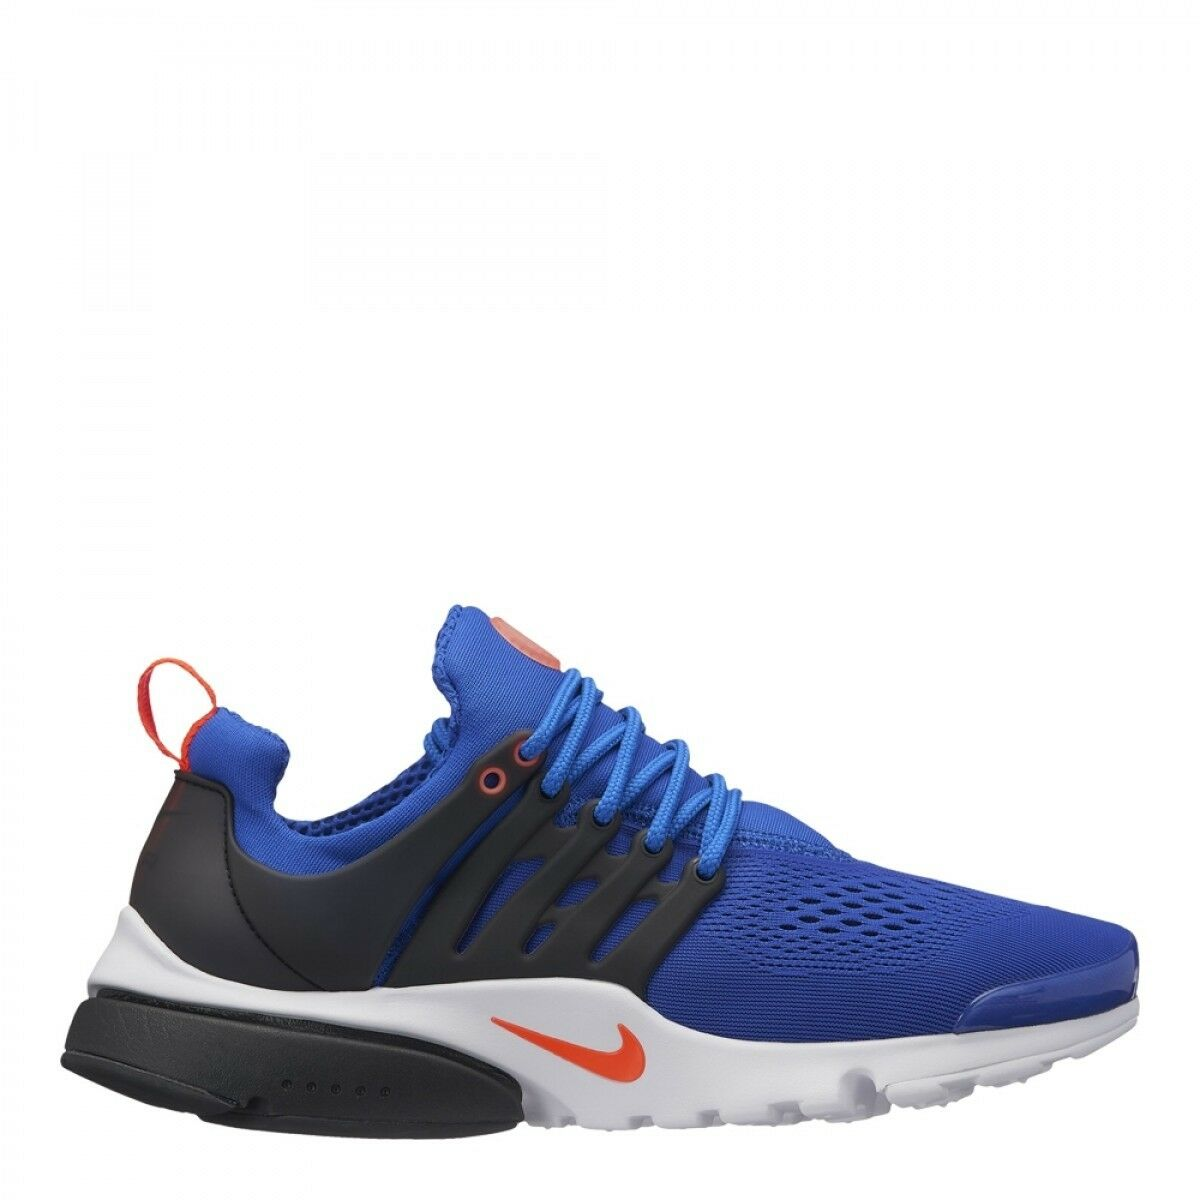 Nike Mens Air Presto Ultra Br Running Shoe